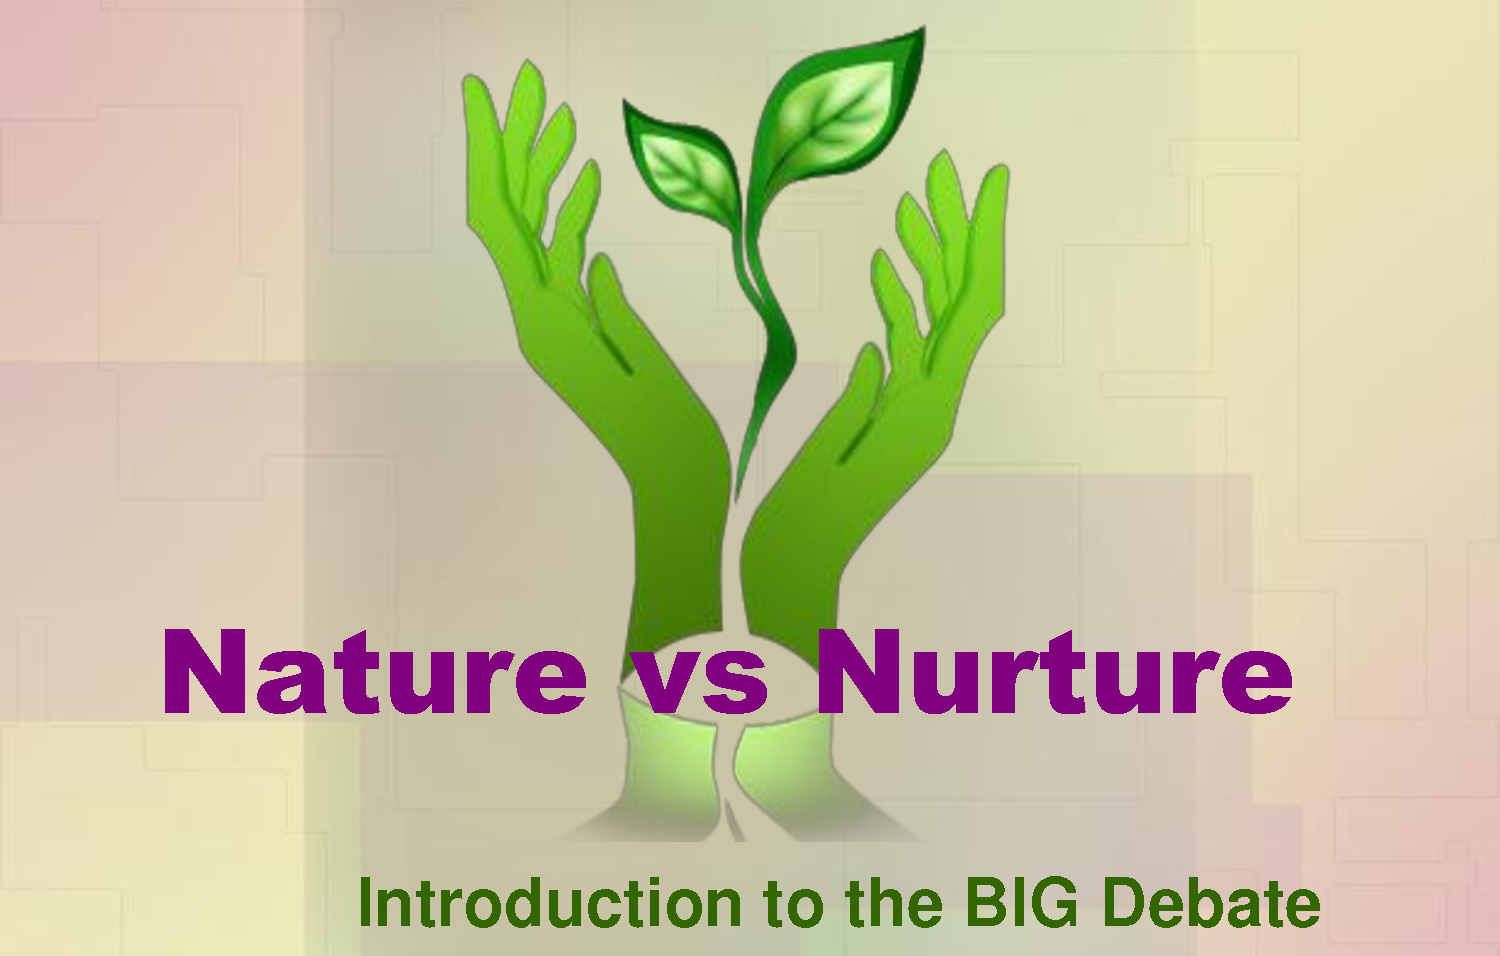 nature versus nurture research paper The nature versus nurture debate has been a classic controversy among experts for centuries nature versus nurture is a debate about how children.